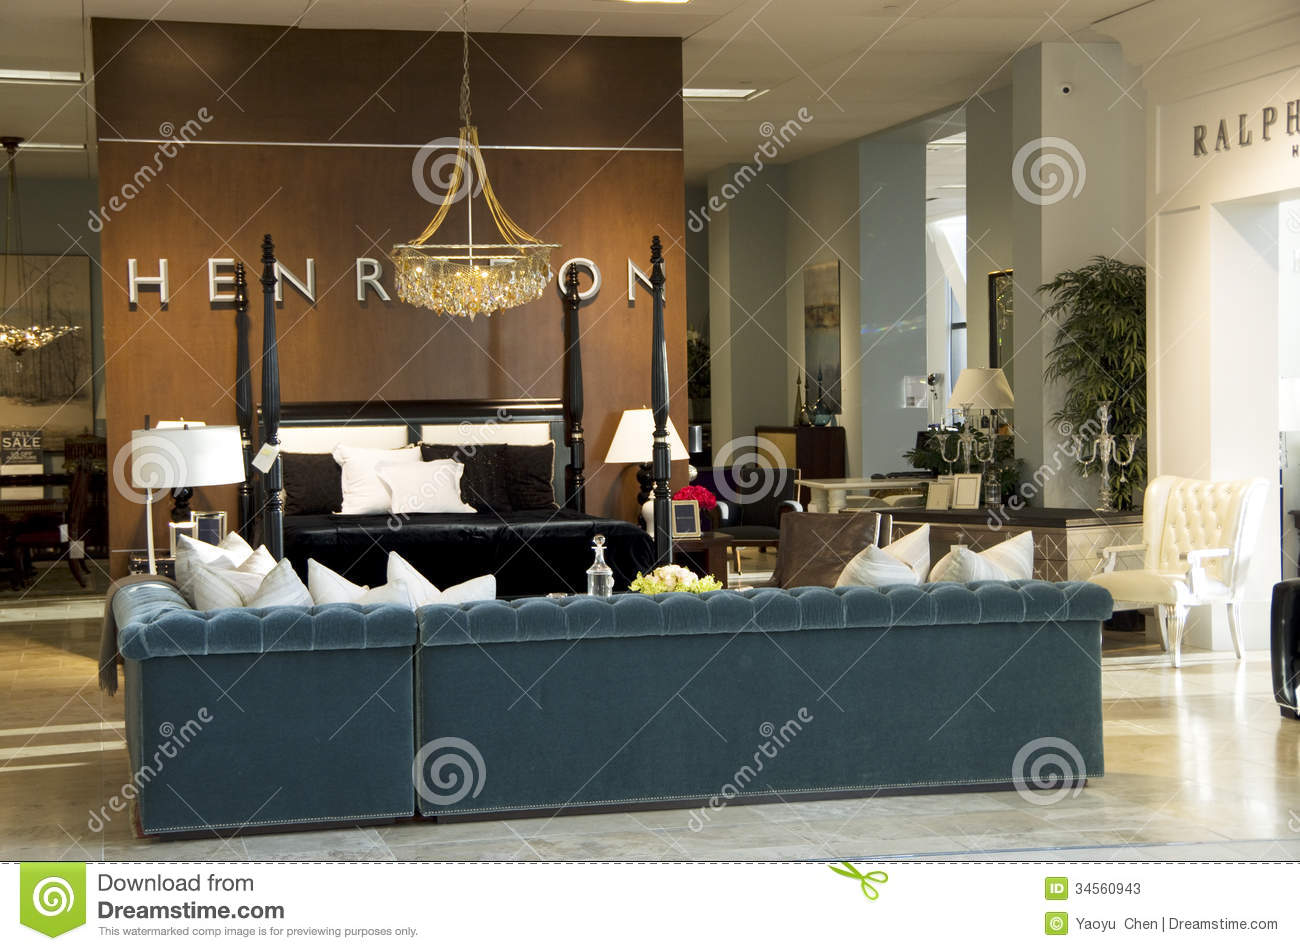 Luxury furniture store editorial stock photo image 34560943 for Furniture mall